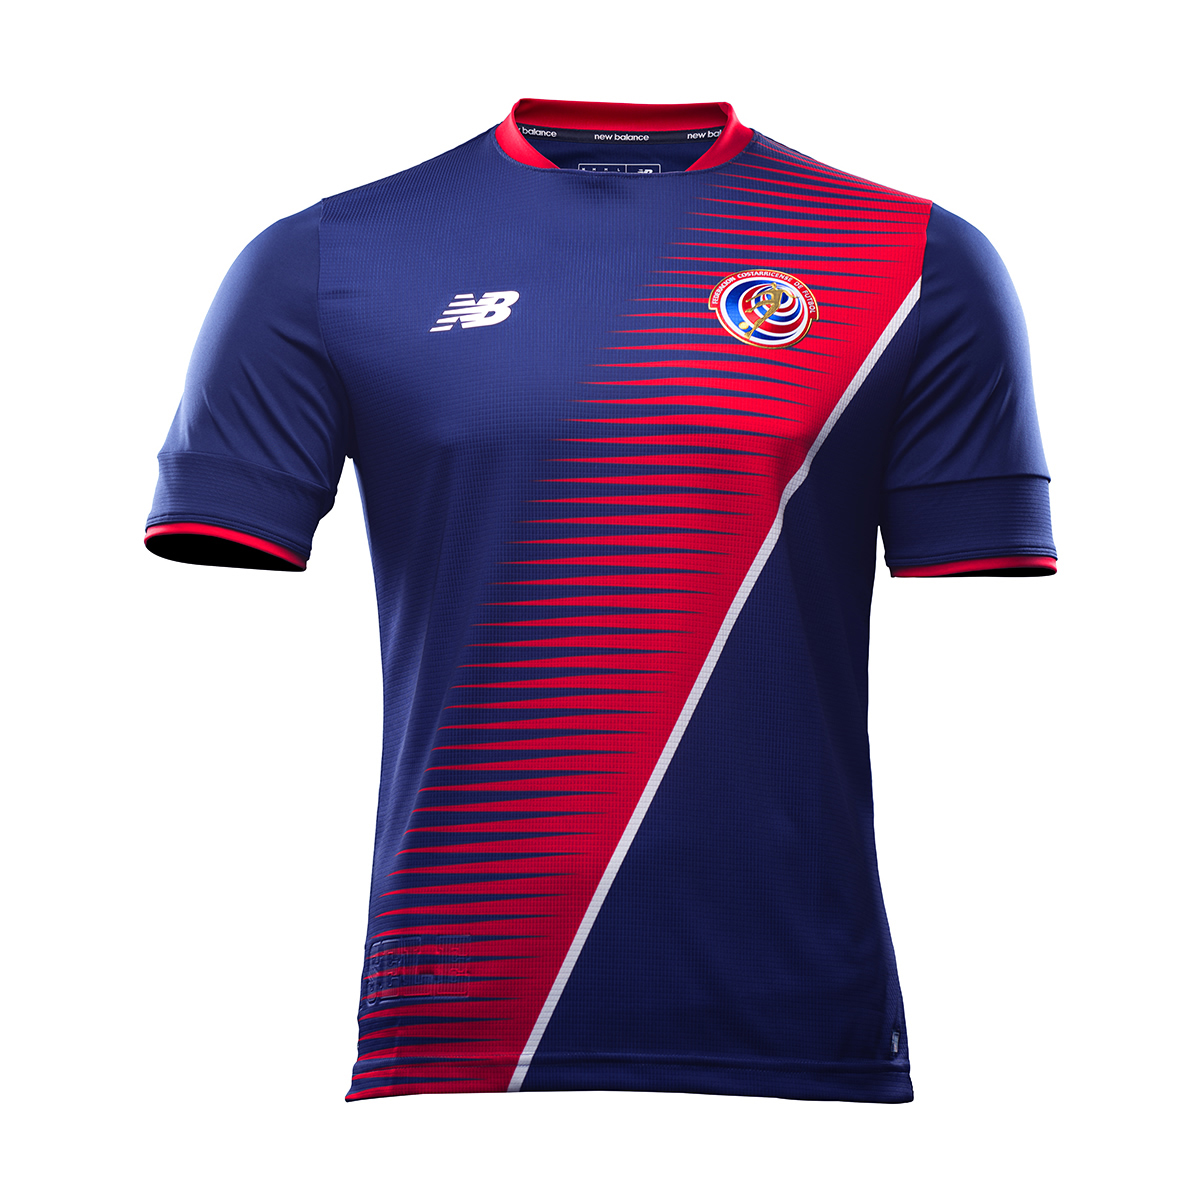 new balance panama away jersey 2018